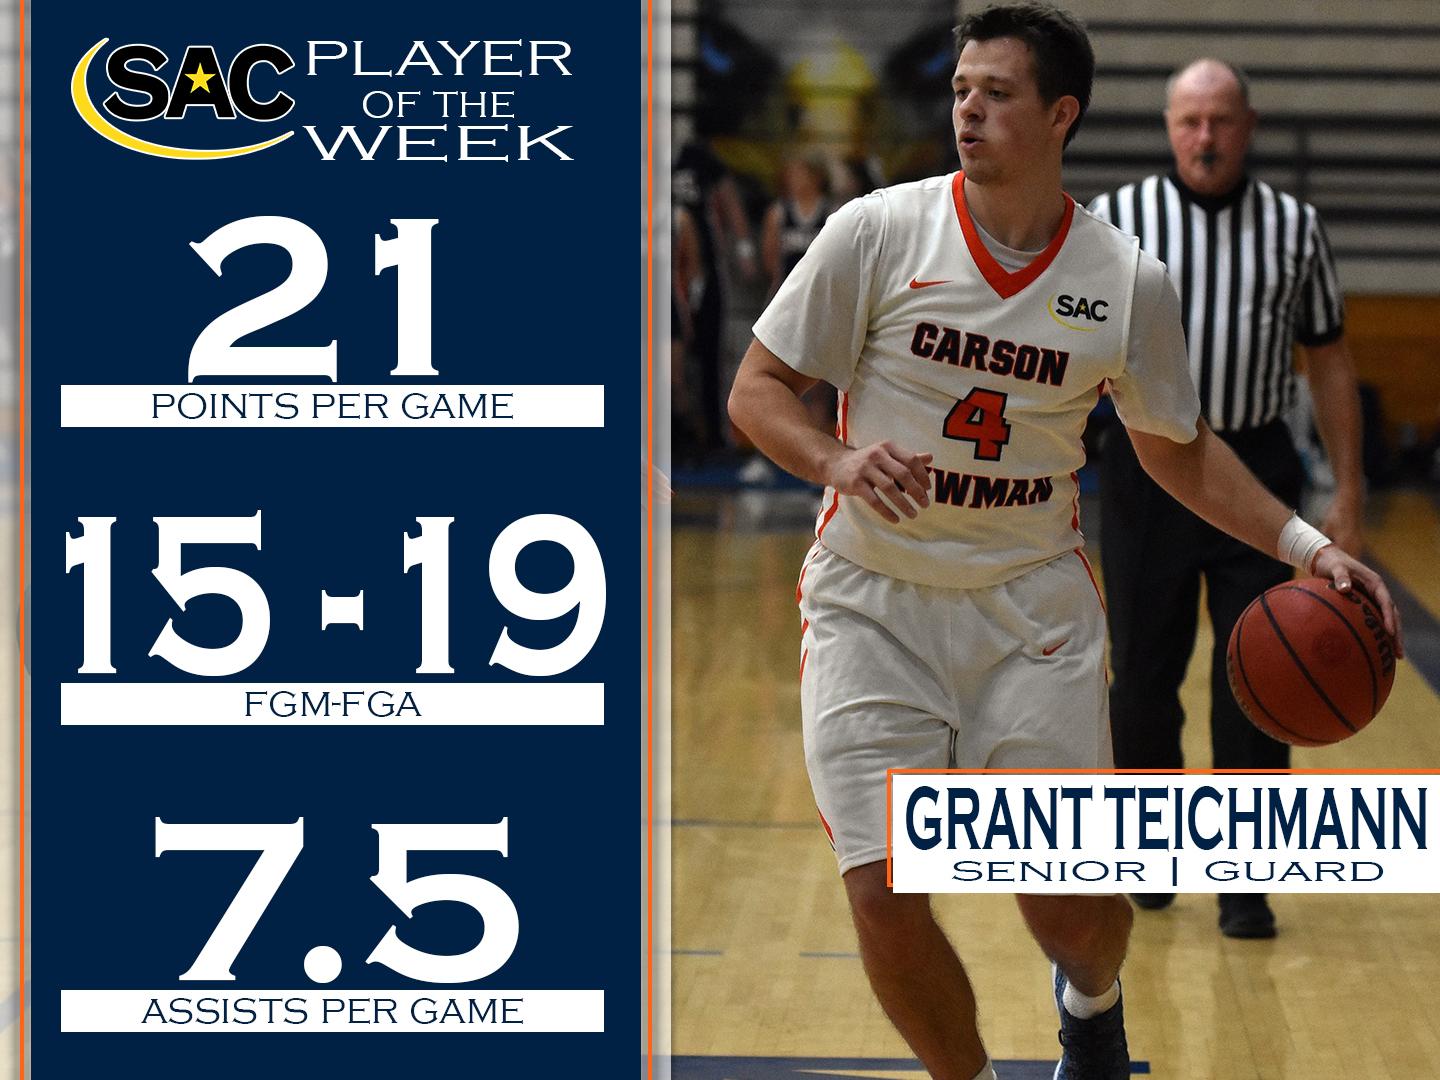 Teichmann lauded as SAC Player of the Week